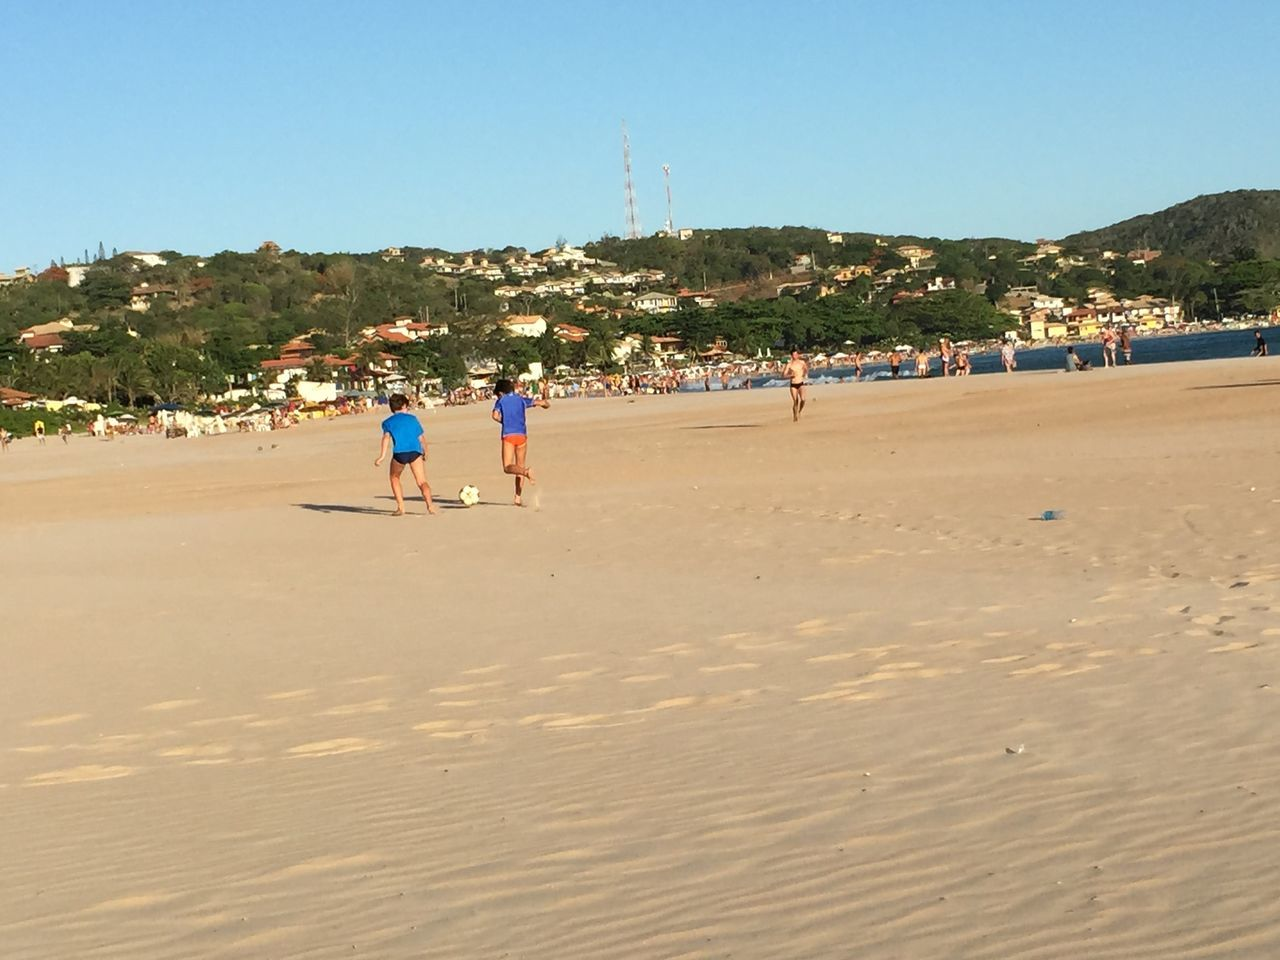 Children Playing Football On Beach